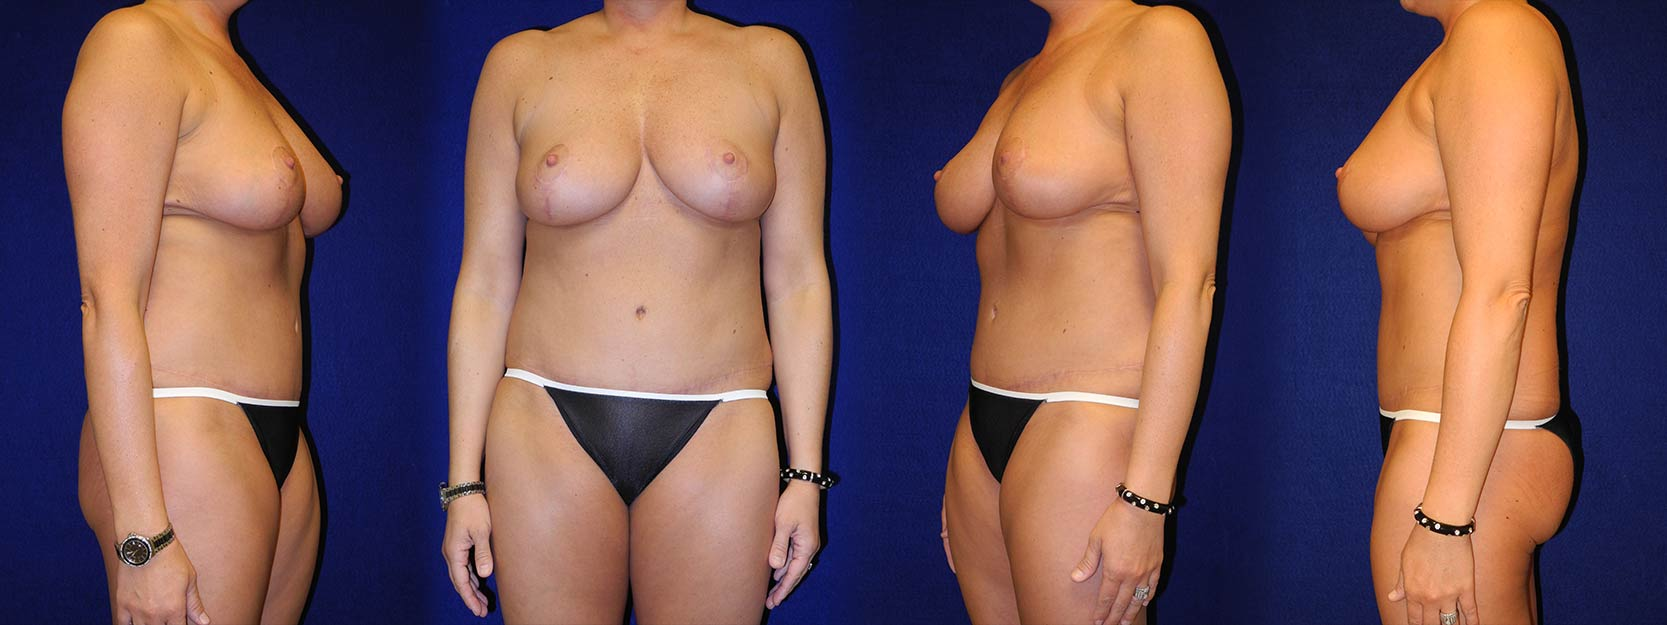 Full View - Breast Reduction and Tummy Tuck After Pregnancy